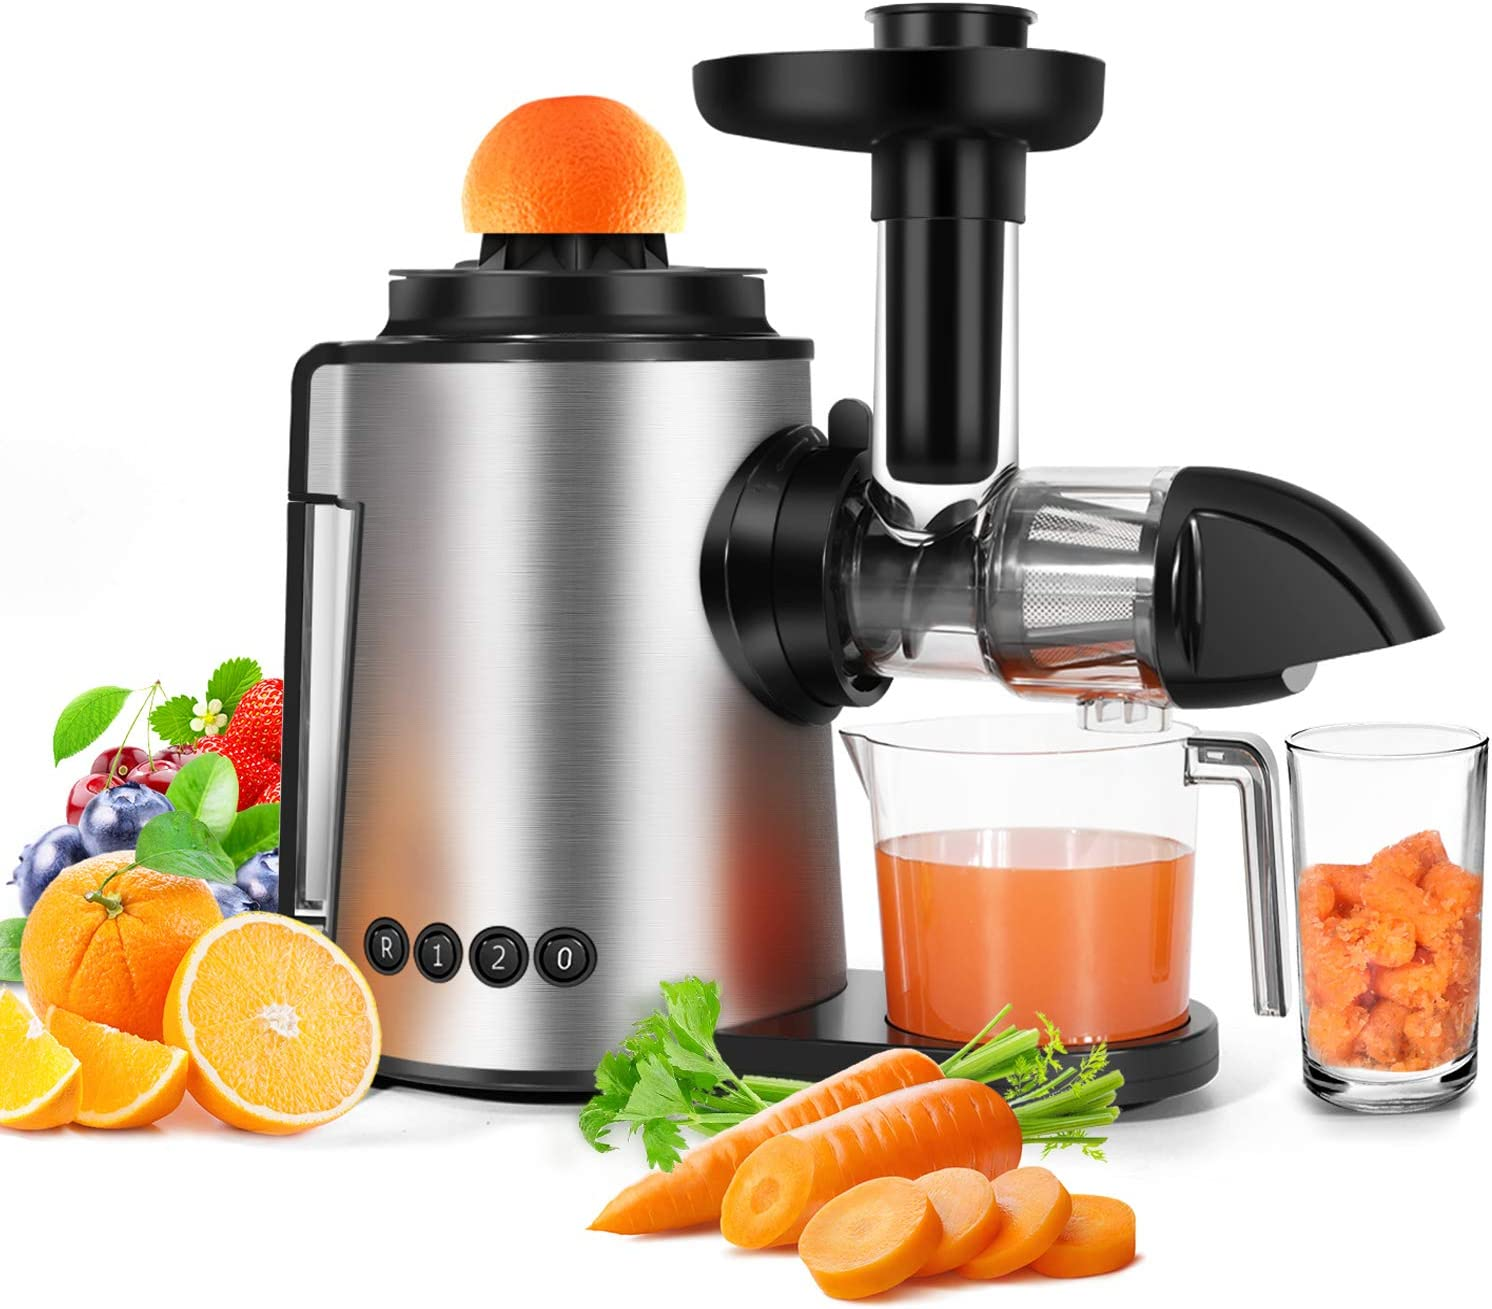 Amazon Promo Code 2020 for Juicer Slow Masticating Juicer Machine 2 in 1